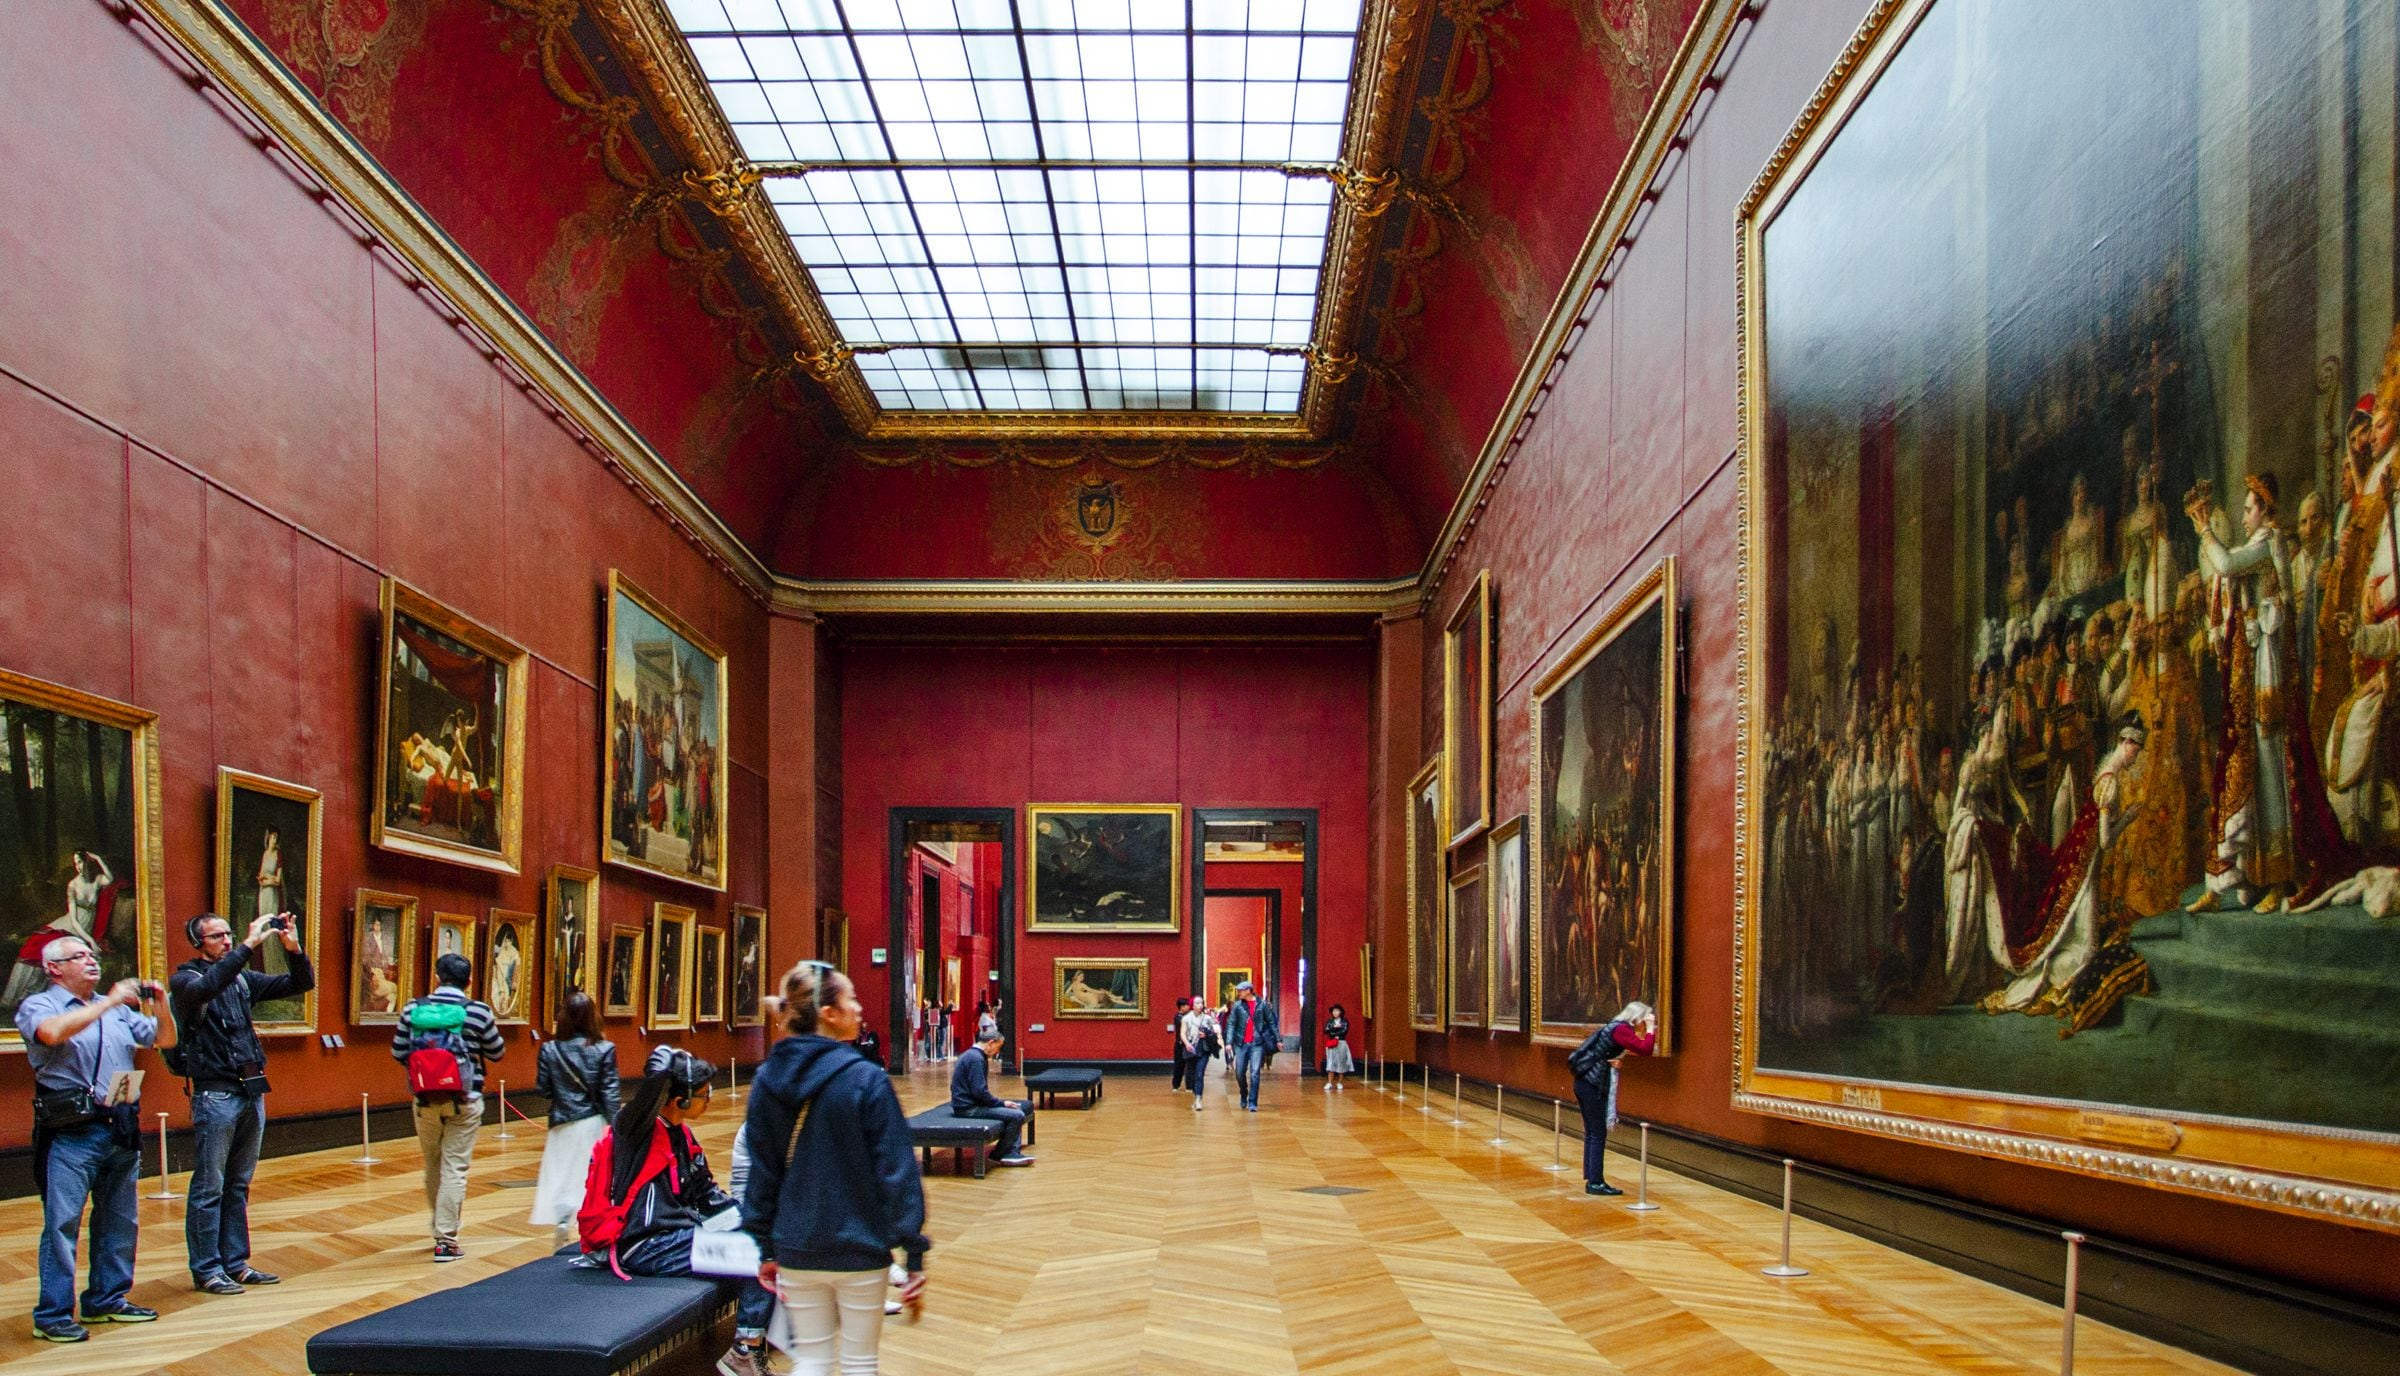 Paintings in the Louvre Museum